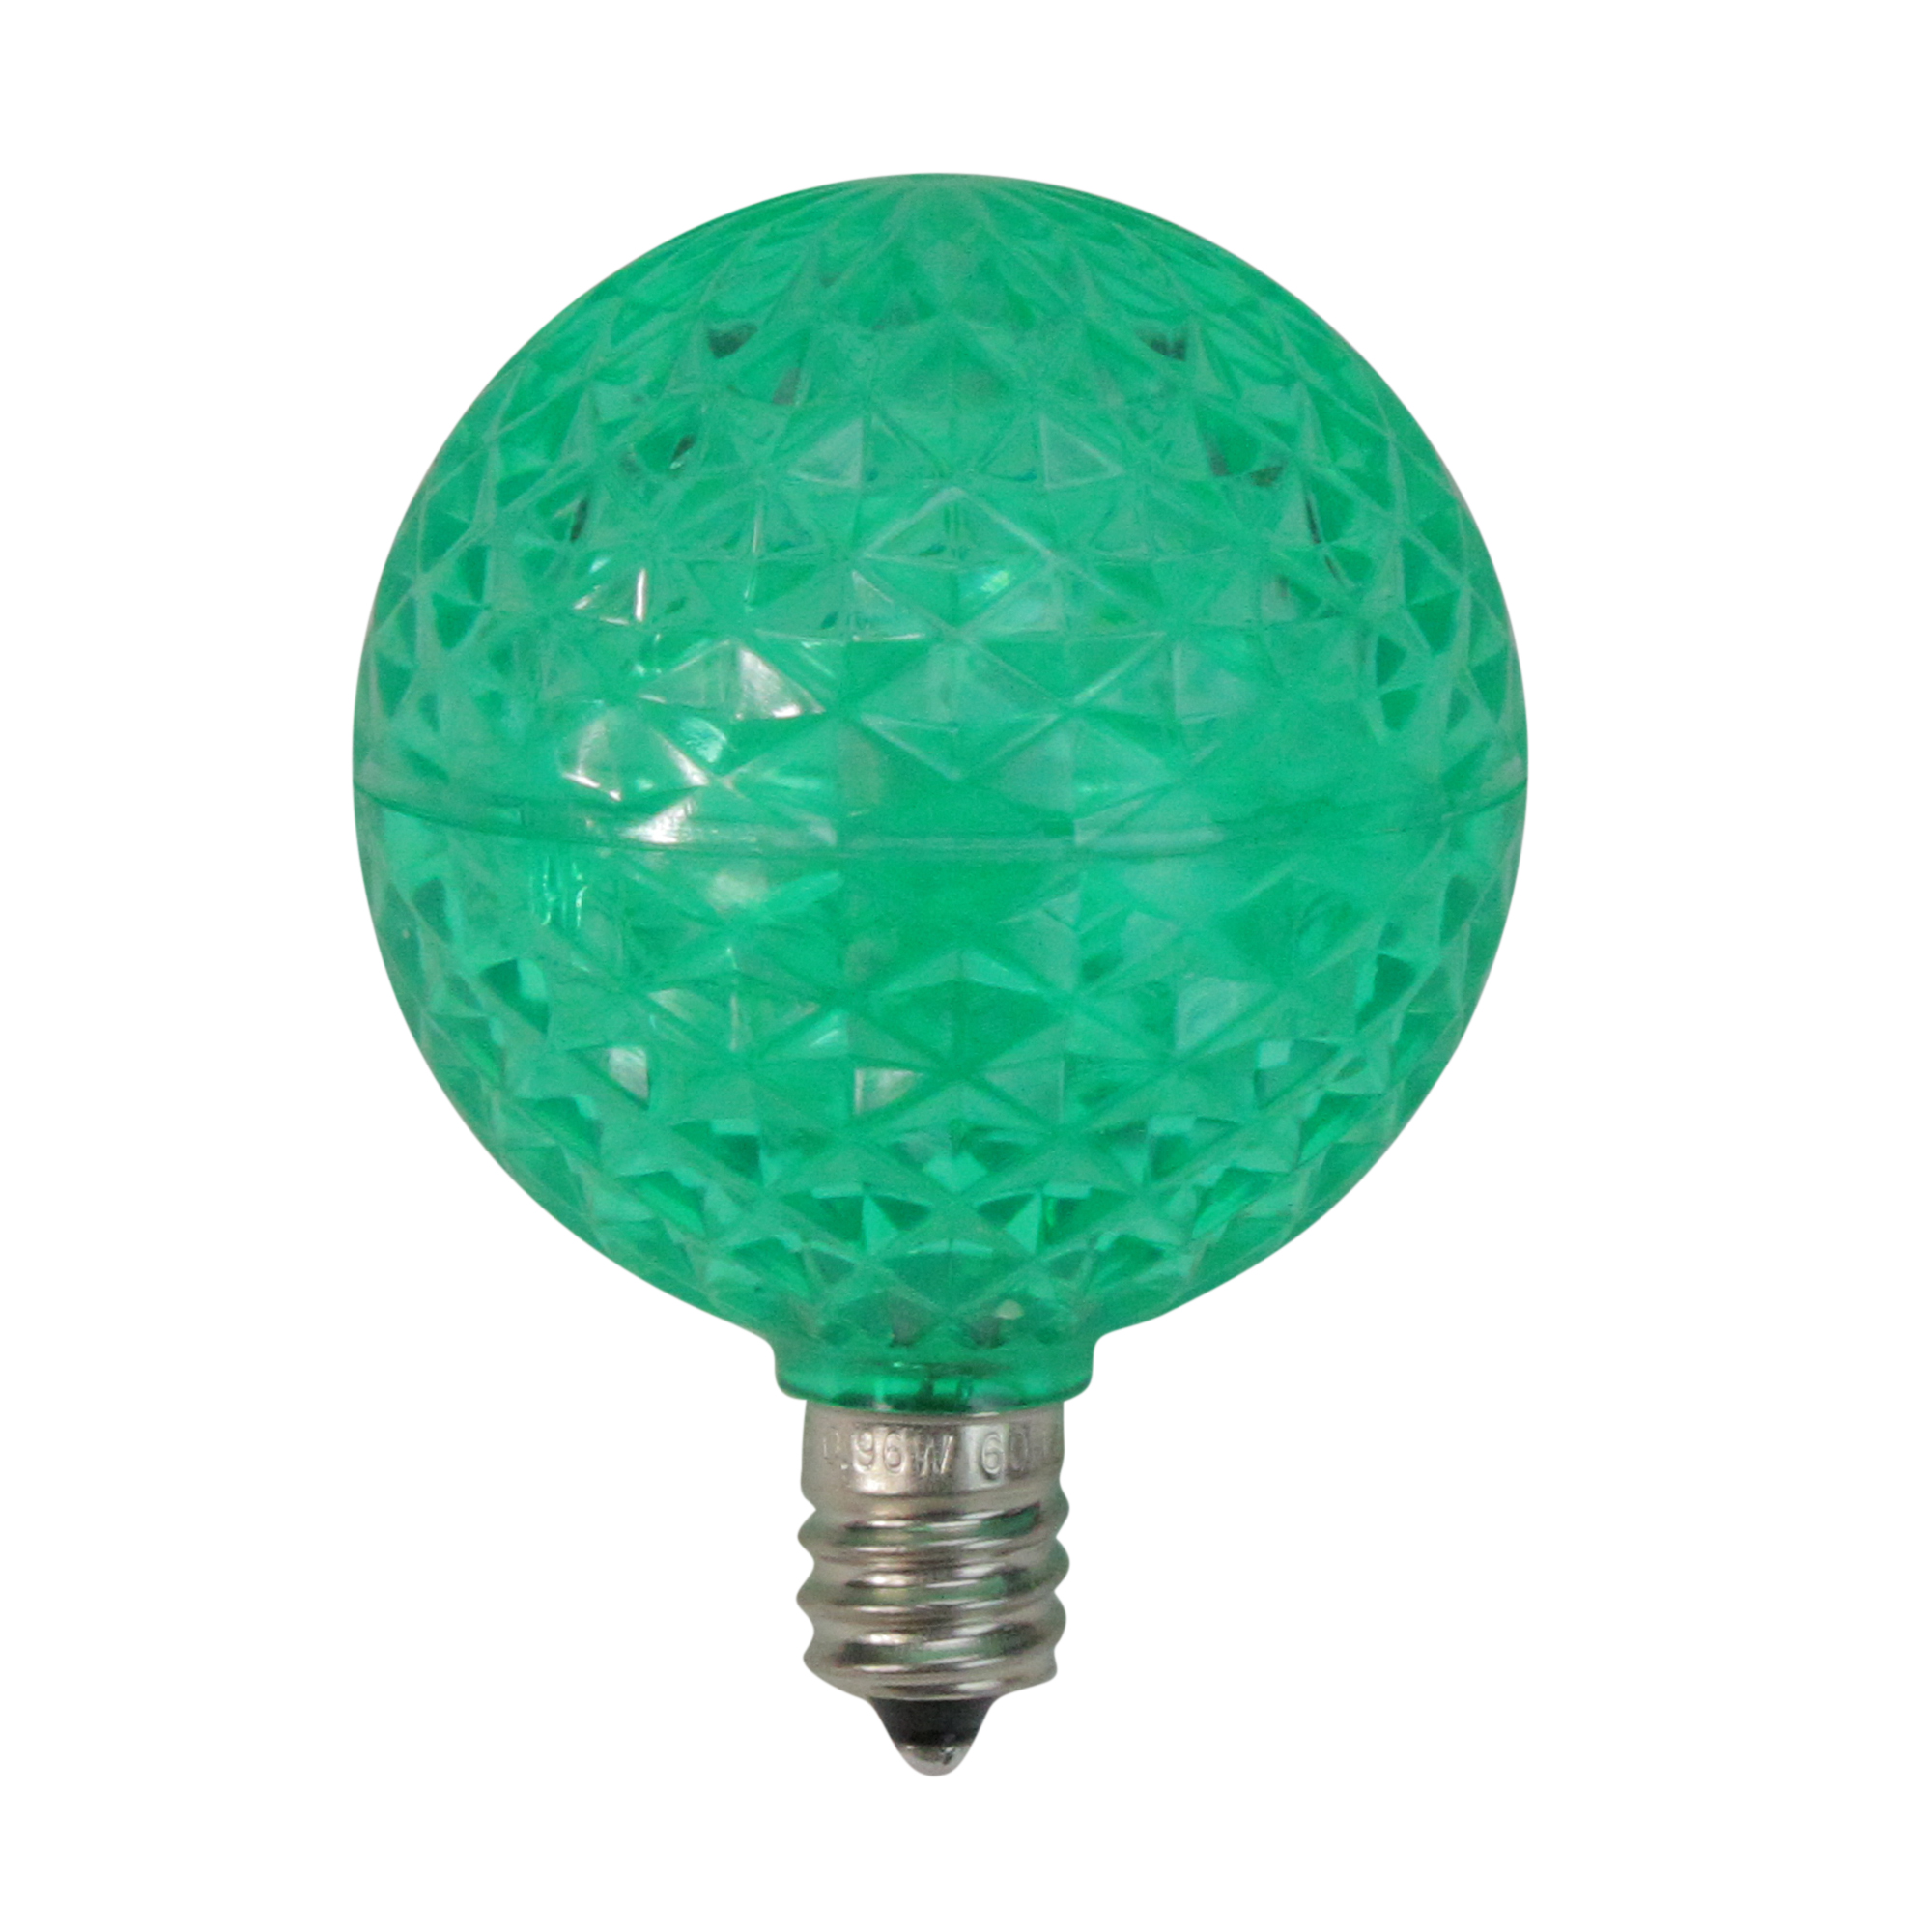 Vickerman 25 Led G50 Green Replacement Christmas Light